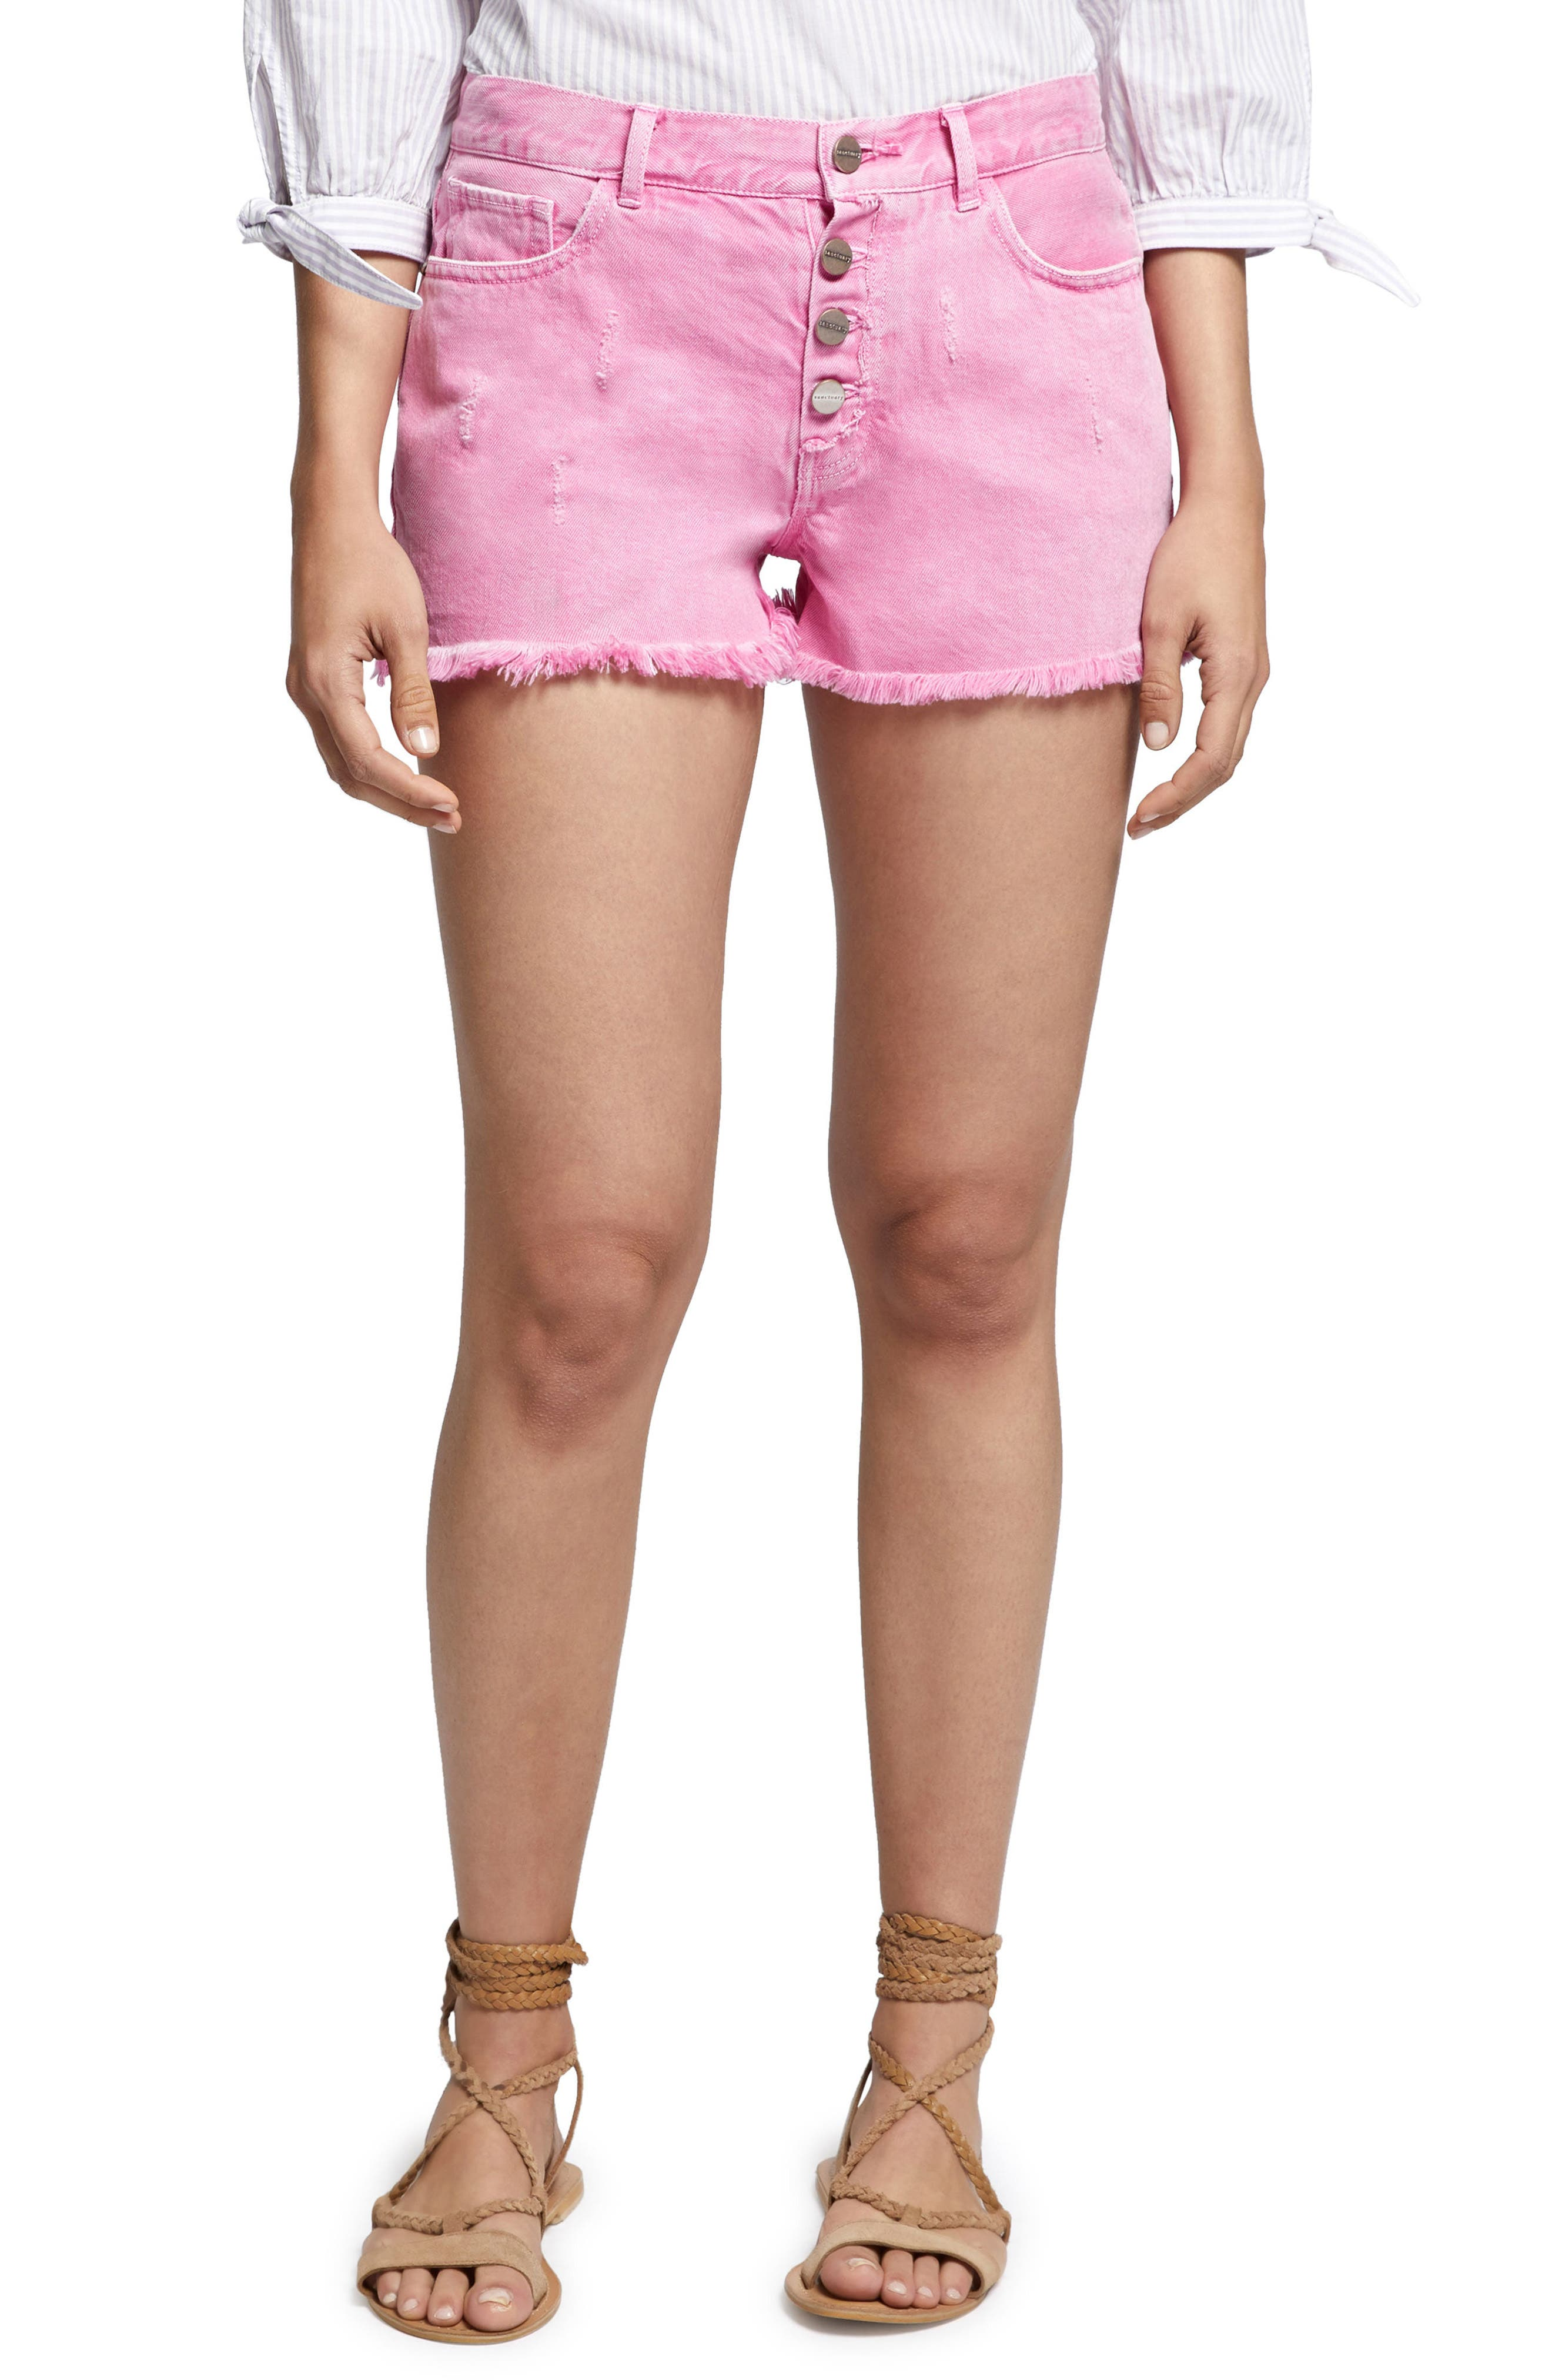 Wild Cherry Fringed Jean Shorts,                         Main,                         color, 650